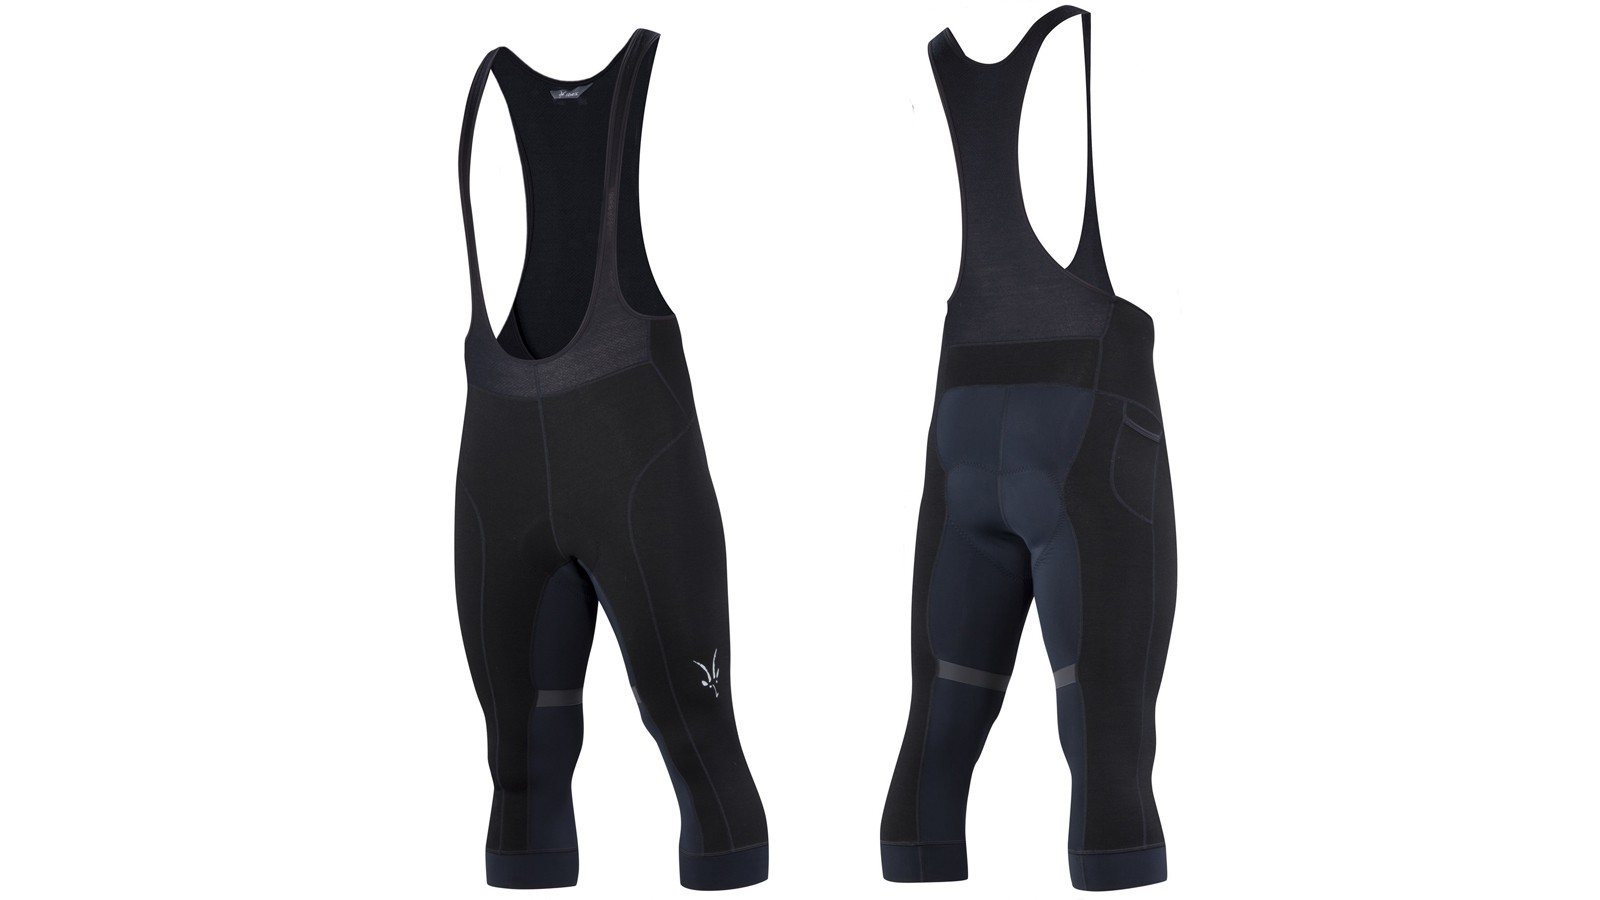 Ibex's 3/4 Bib Knickers are built for the tricky rides in spring and fall